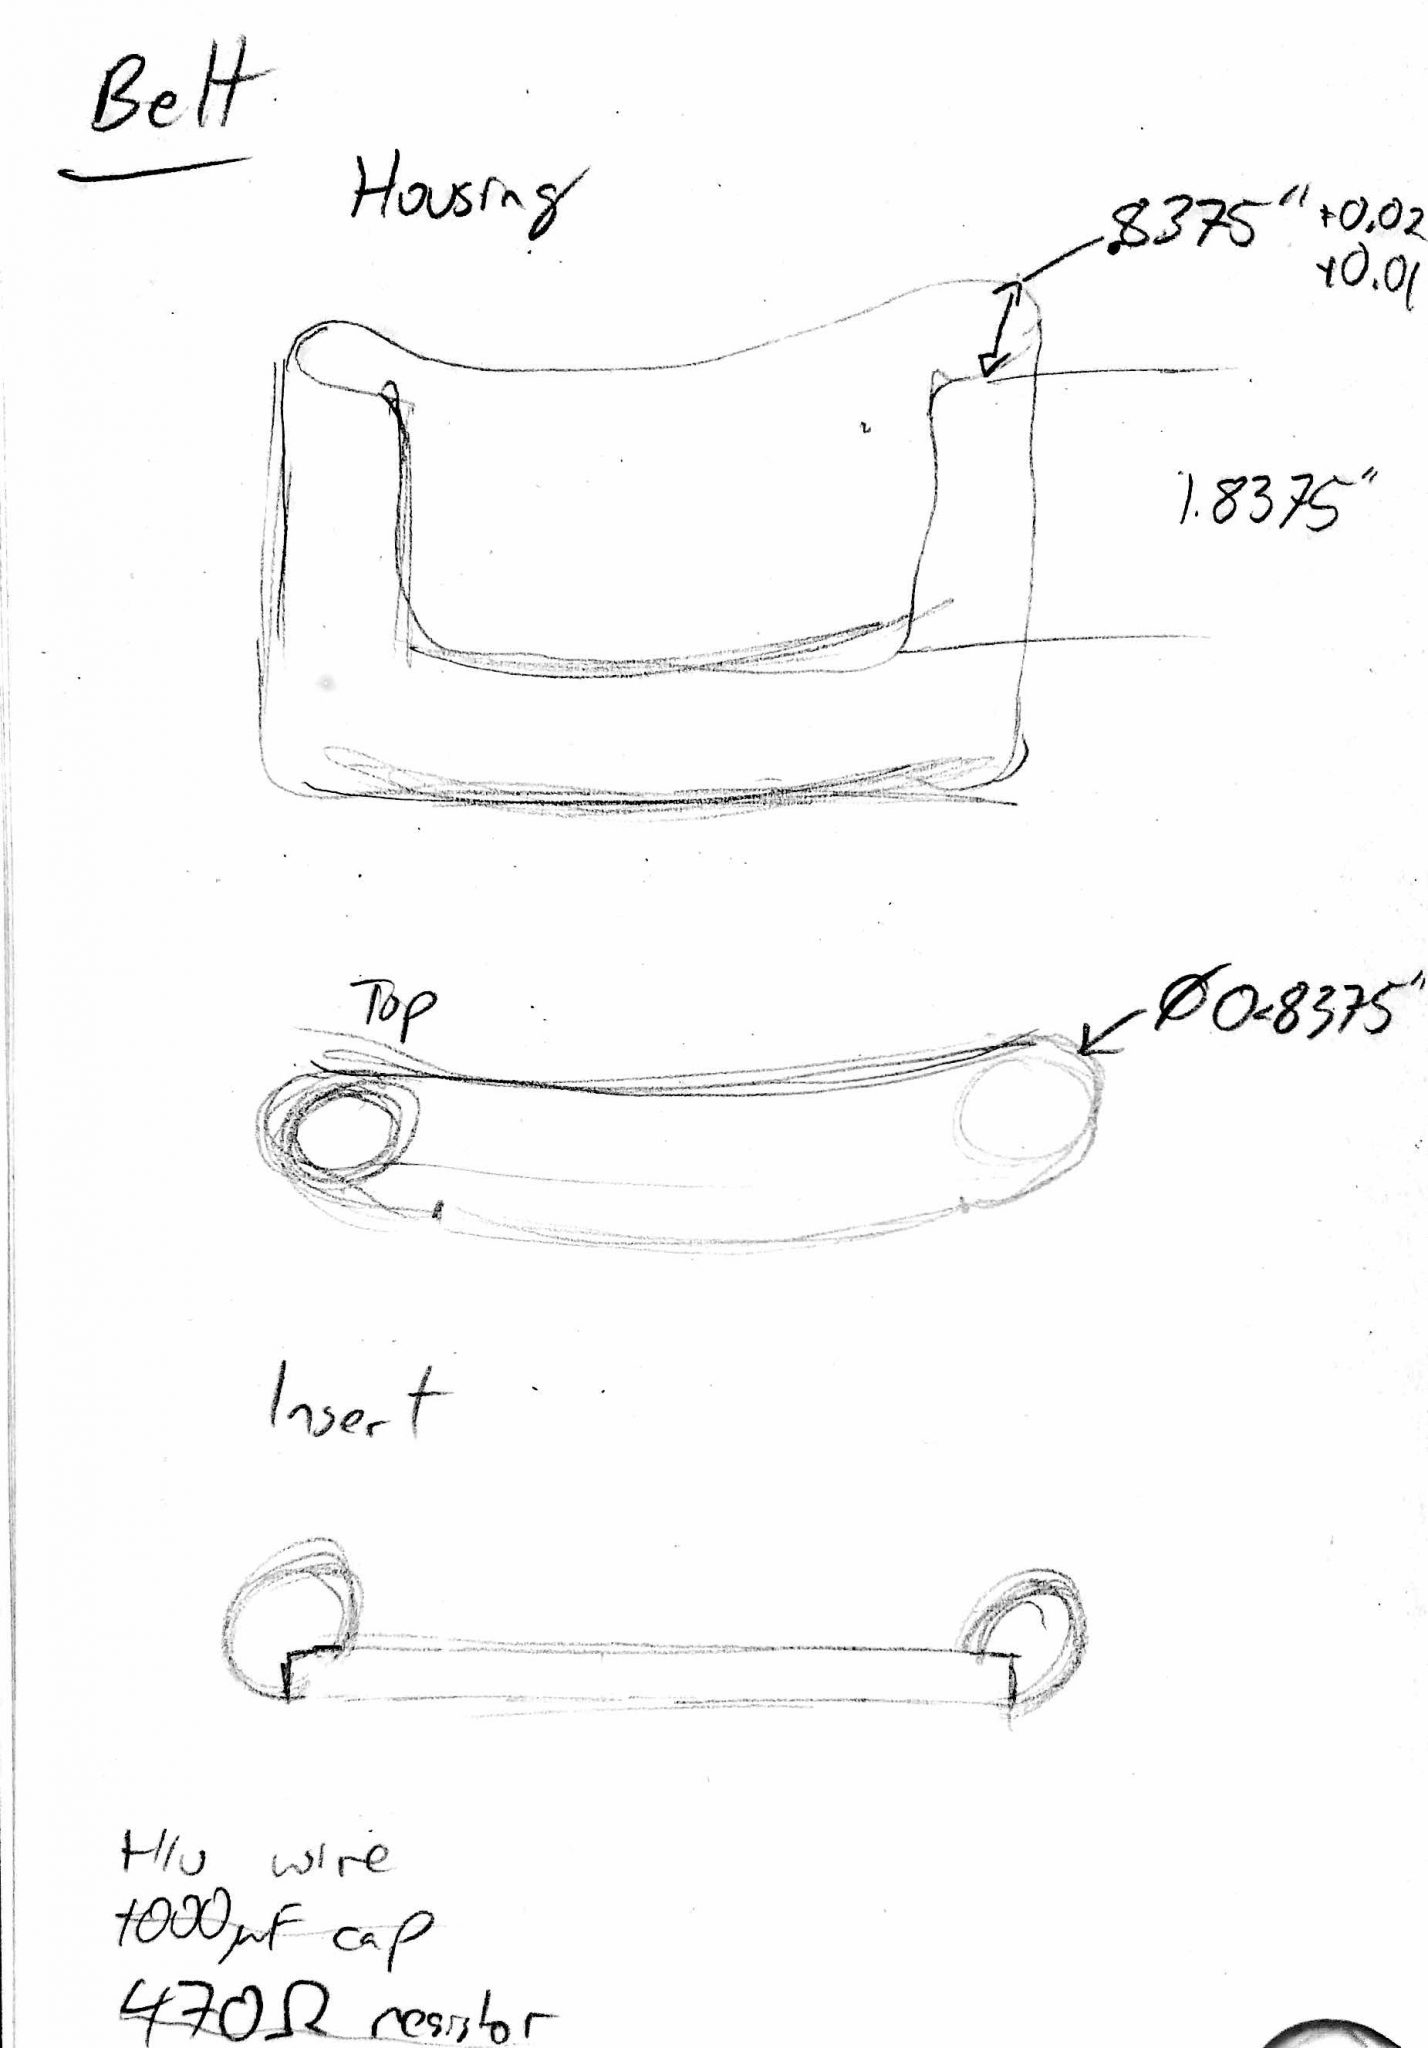 Buckle design v.2 based on cowboy belt buckle which holds a 3oz flask.